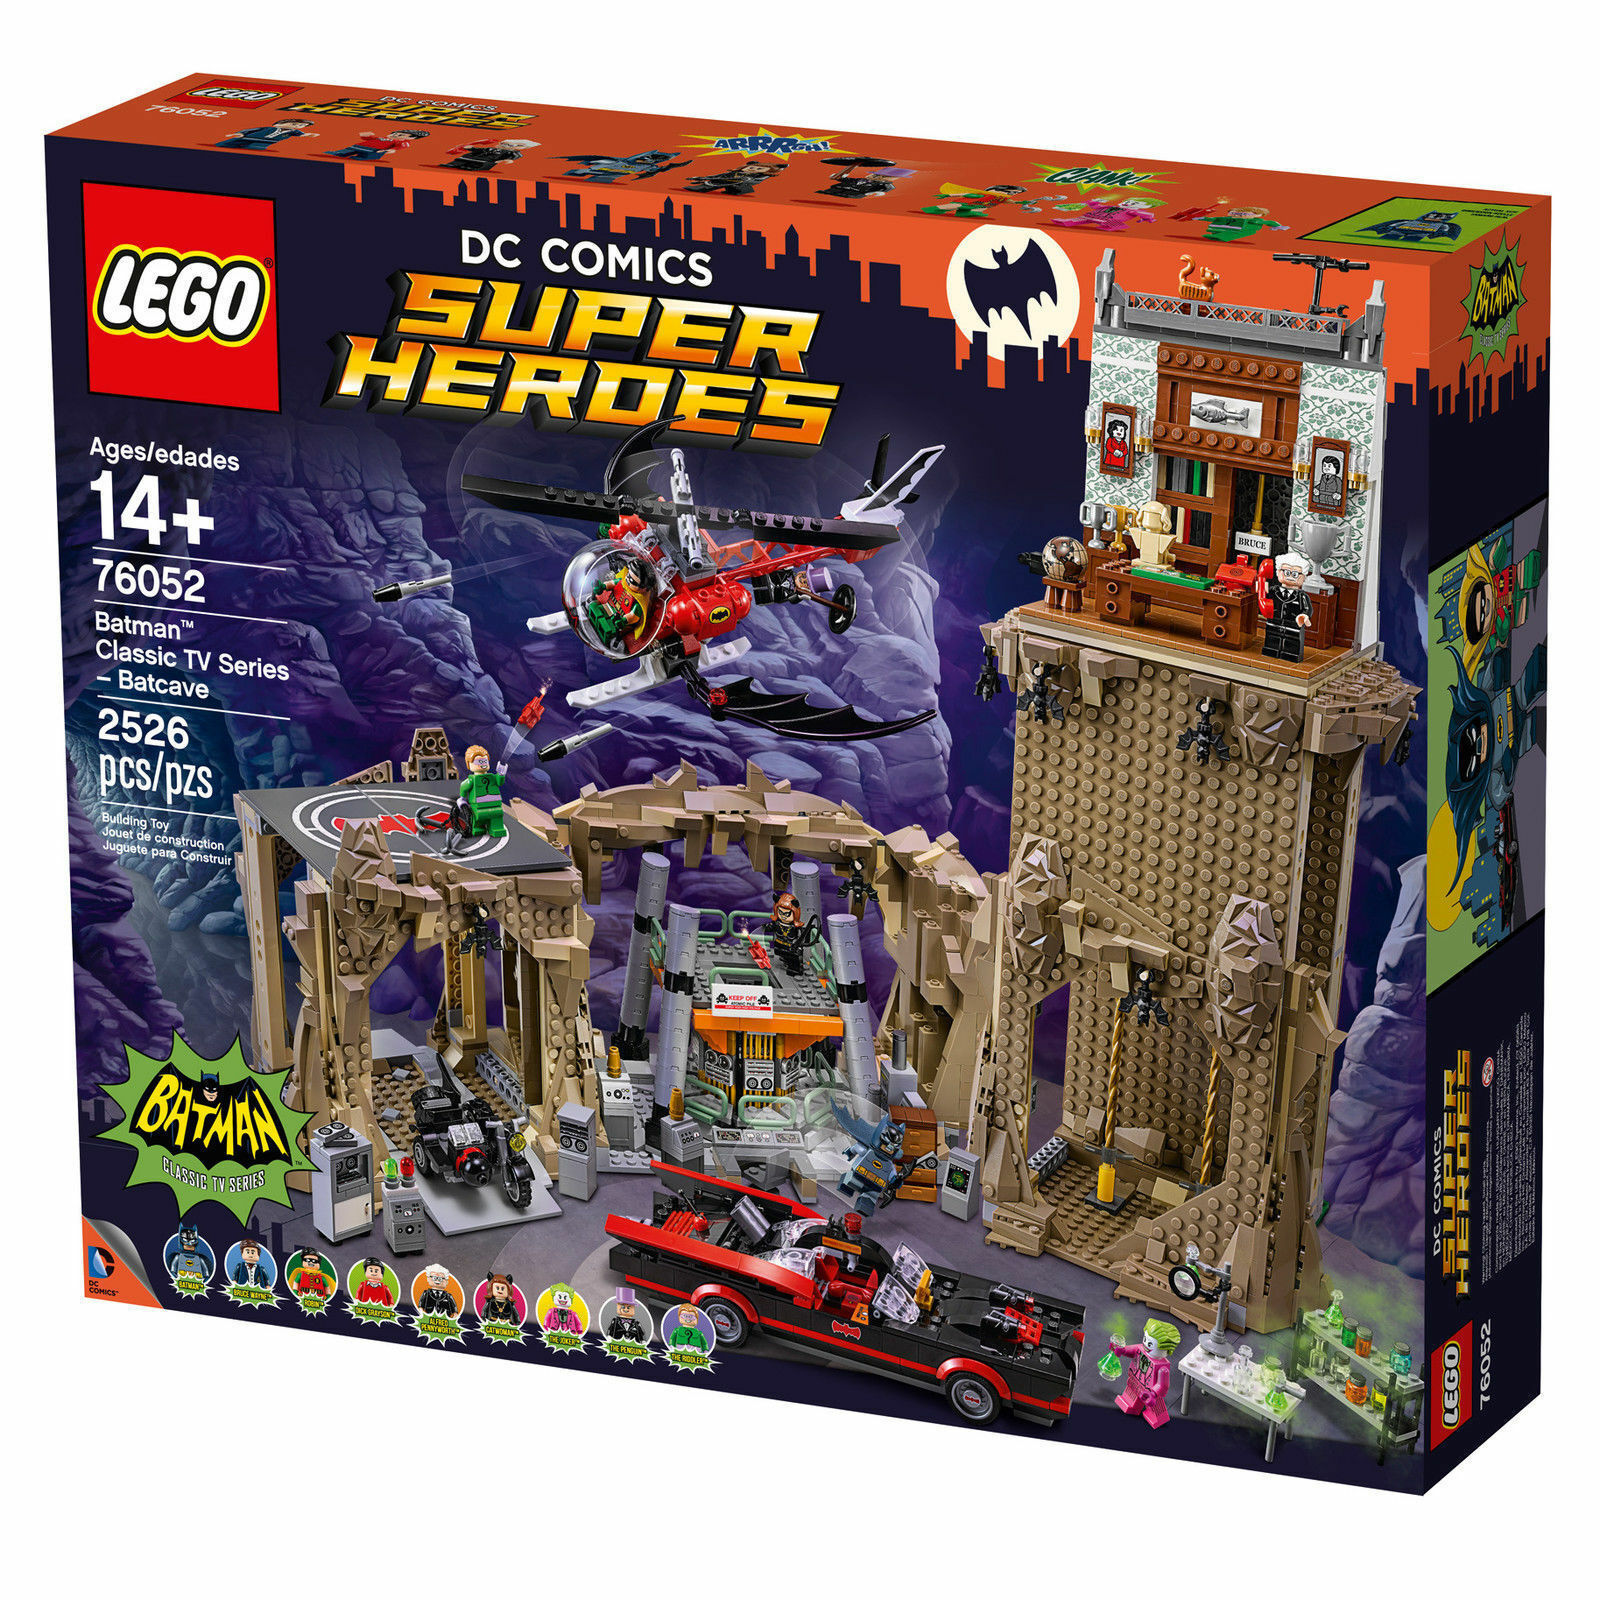 Nuovo and Sealed LEGO DC Universe Batman Classic TV Series Batcave 76052